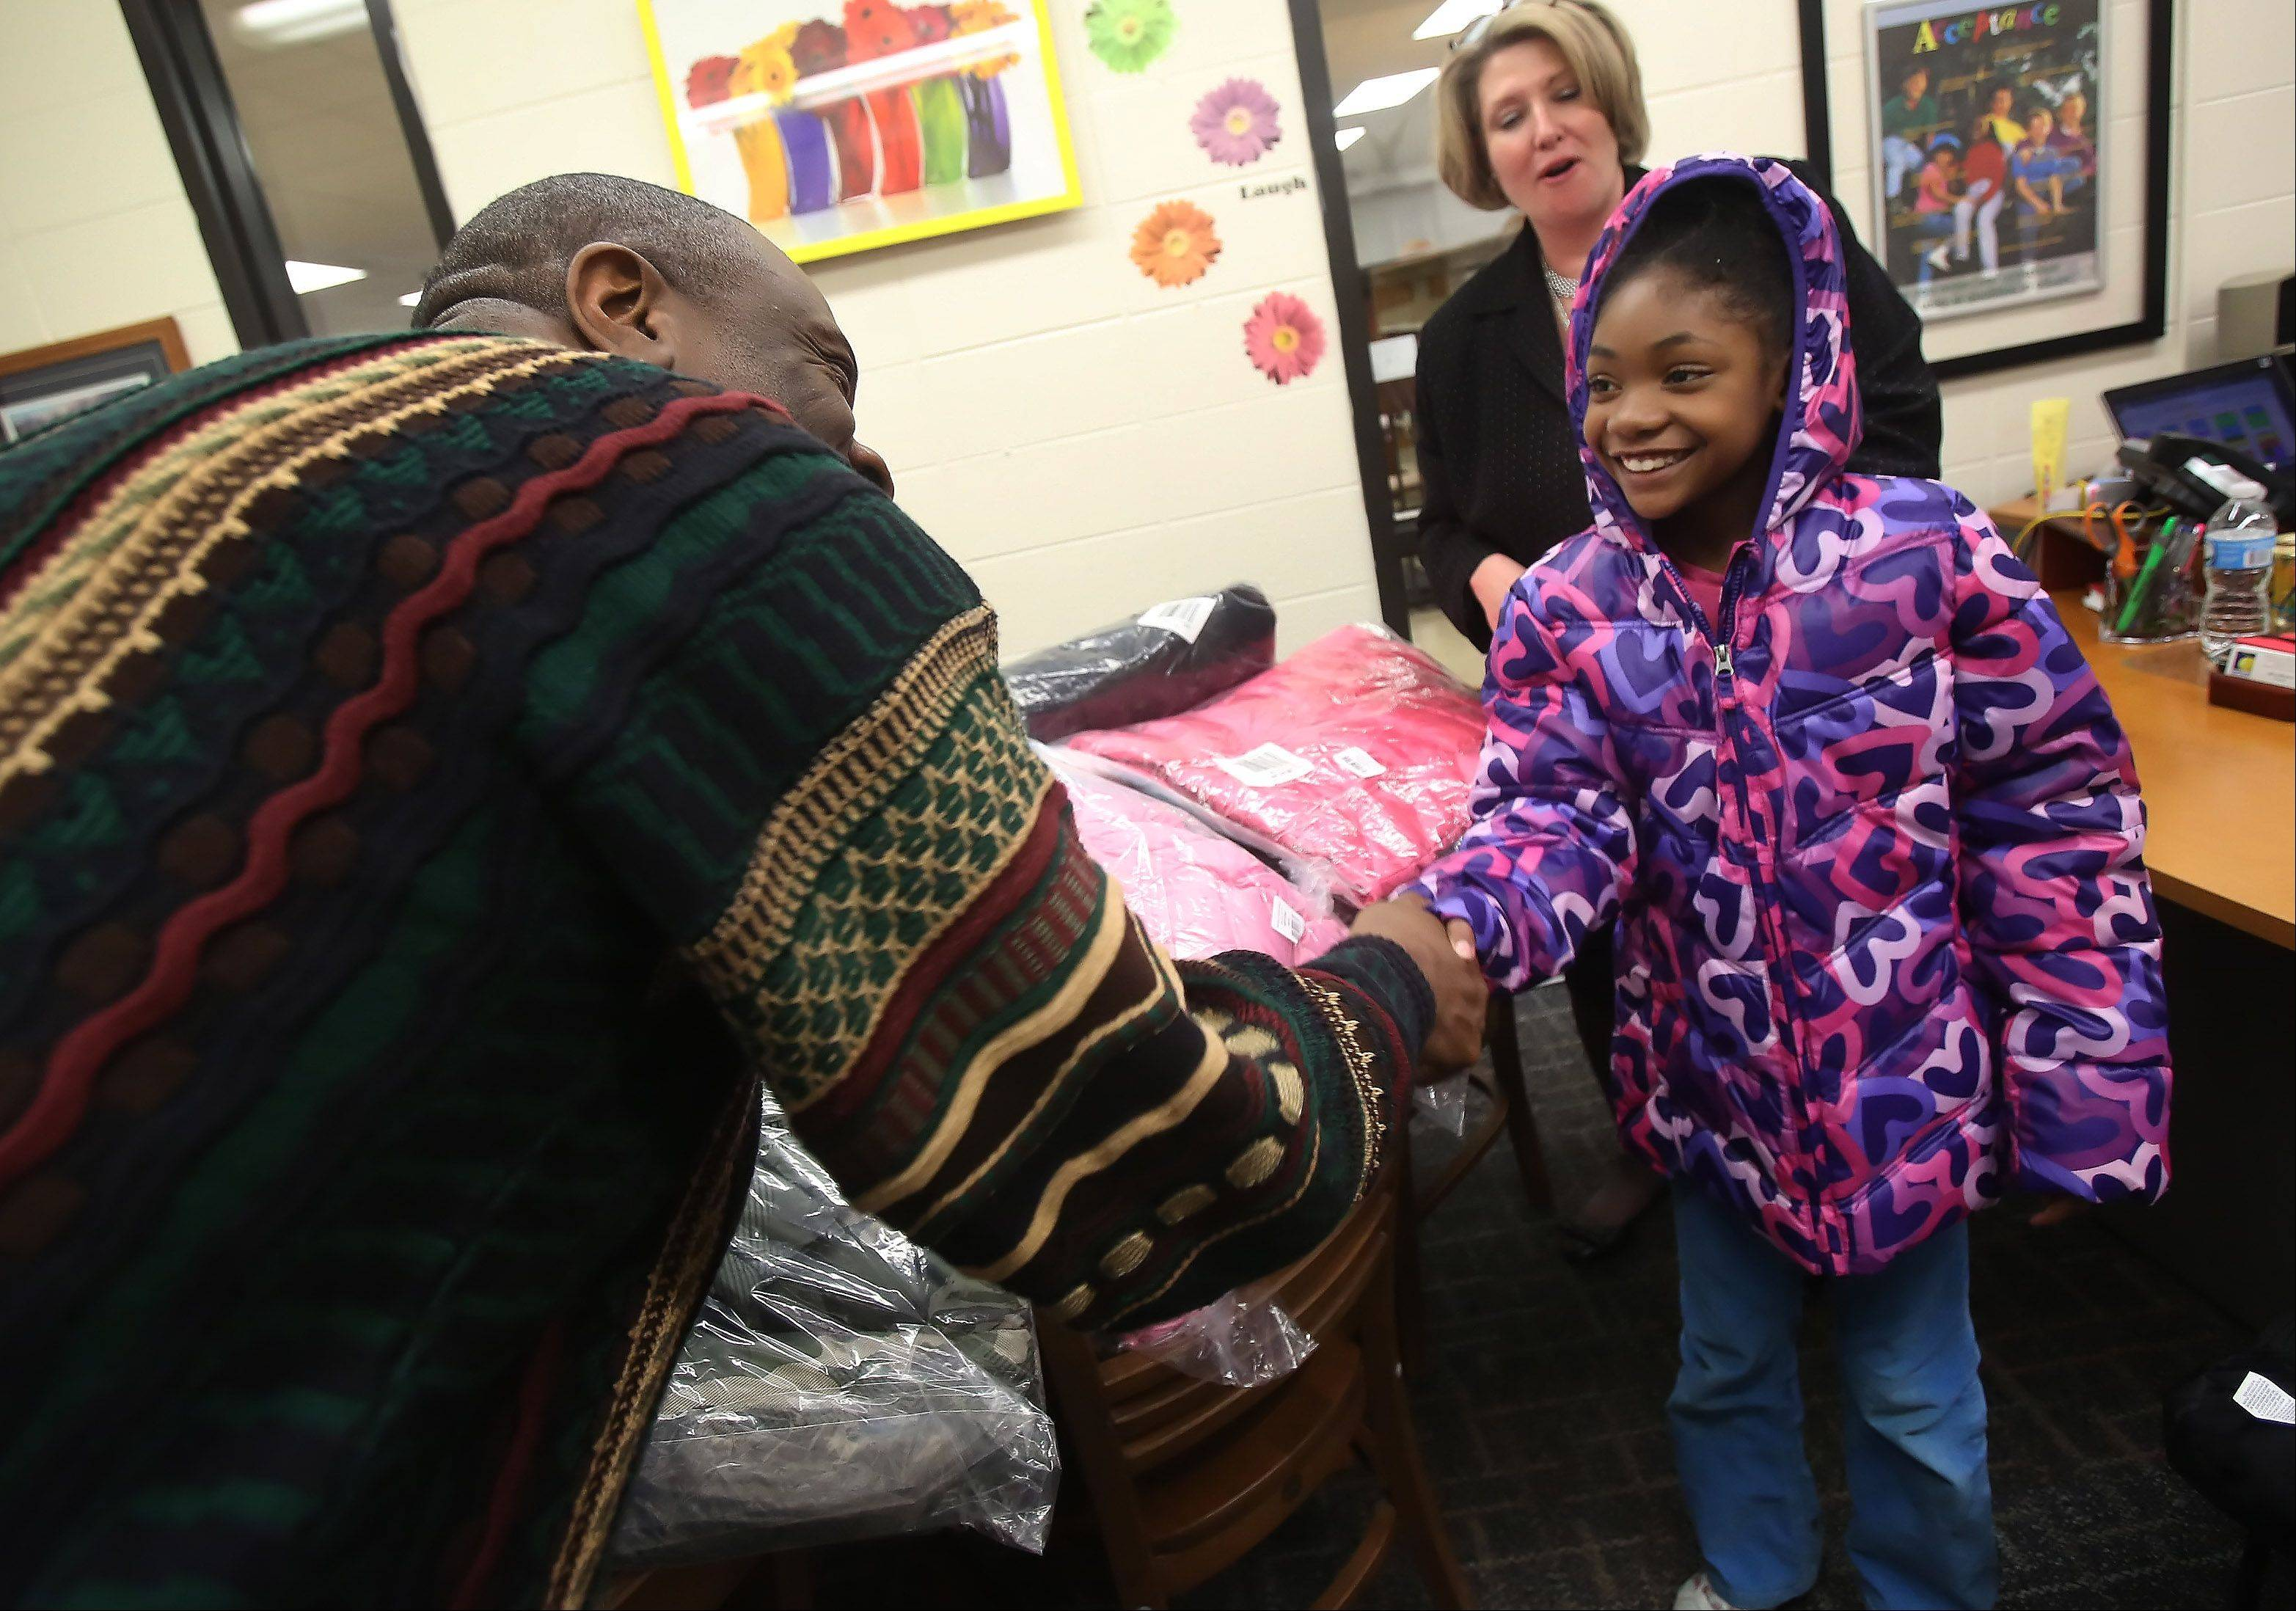 Raymond Ellis Elementary School third-grader Tahirah Young thanks Pastor Choice Harris after receiving a new coat Tuesday at the Round Lake Beach school. Christian Faith Fellowship Church Round Lake donated 50 coats to the school during its first winter coat drive.